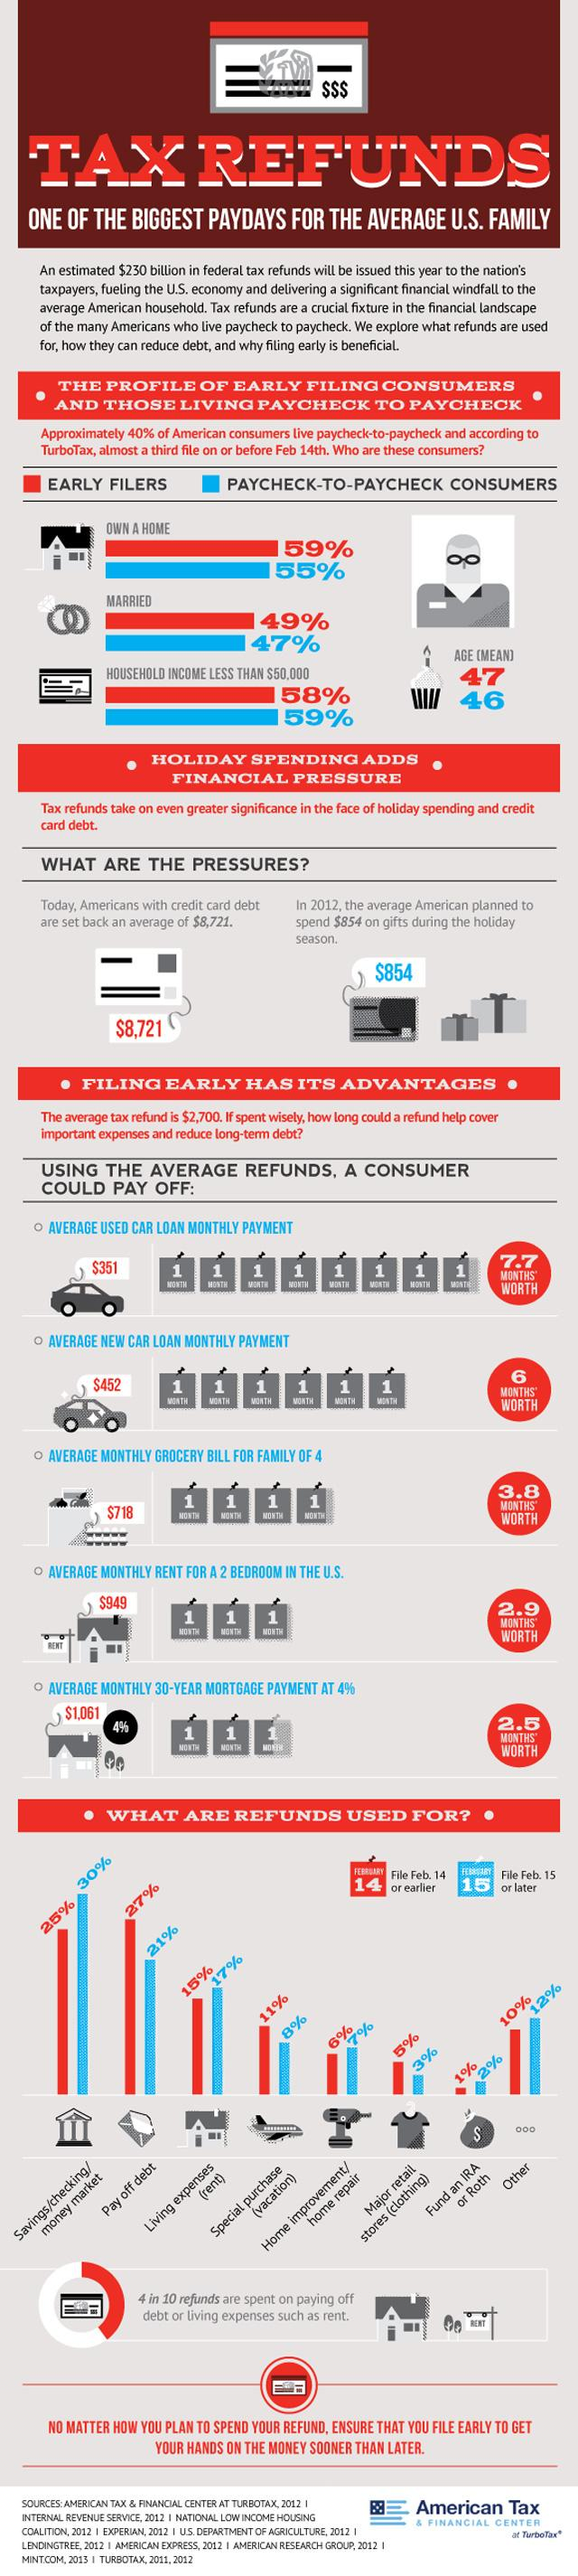 Tax Refunds: One of the Biggest Paydays for the Average U.S. Family image TaxCenter taxes and payday infographic business2 full